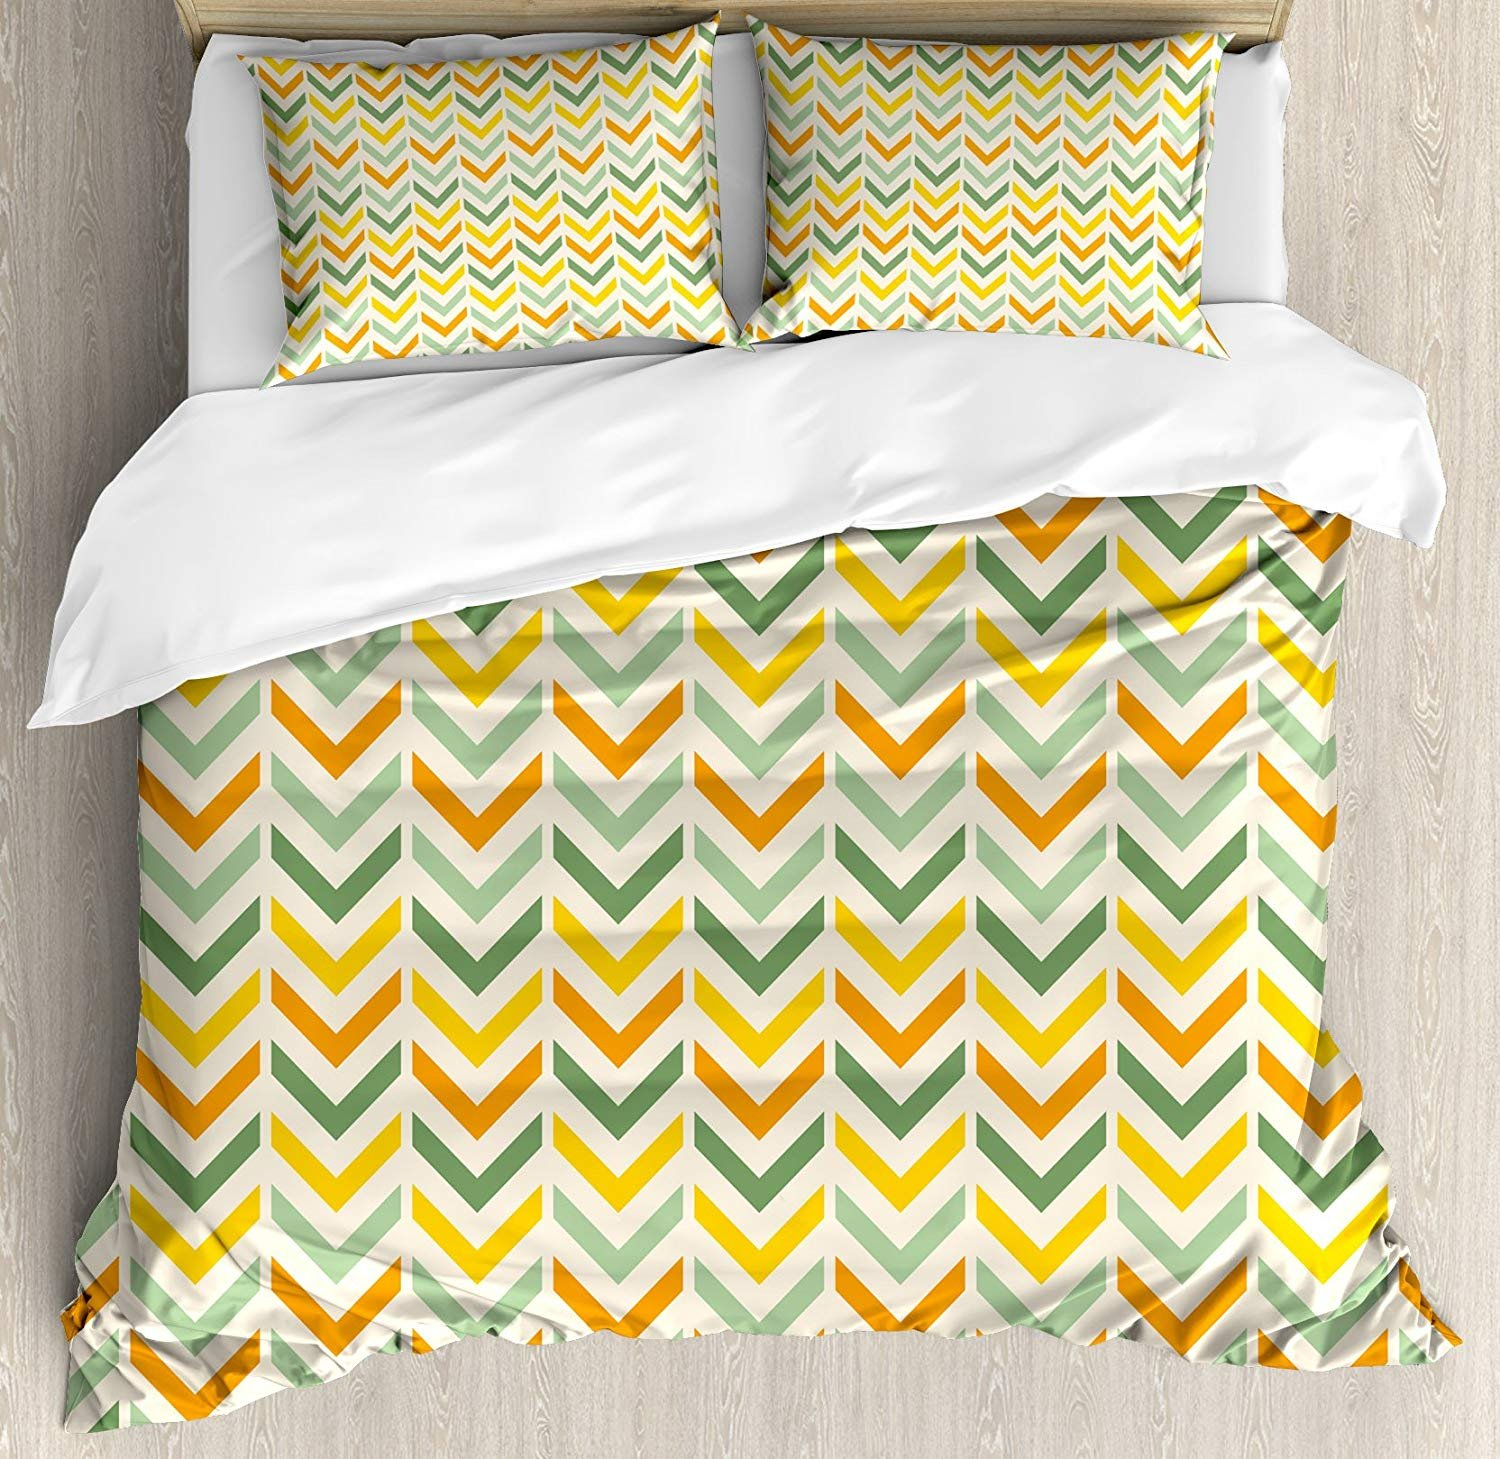 Anzona Full Size Chevron 3 PCS Duvet Cover Set, Retro Countryside Colors Zigzags in Vertical Direction Striped Composition, Bedding Set Bedspread for Children/Teens/Adults/Kids, Green Yellow Orange